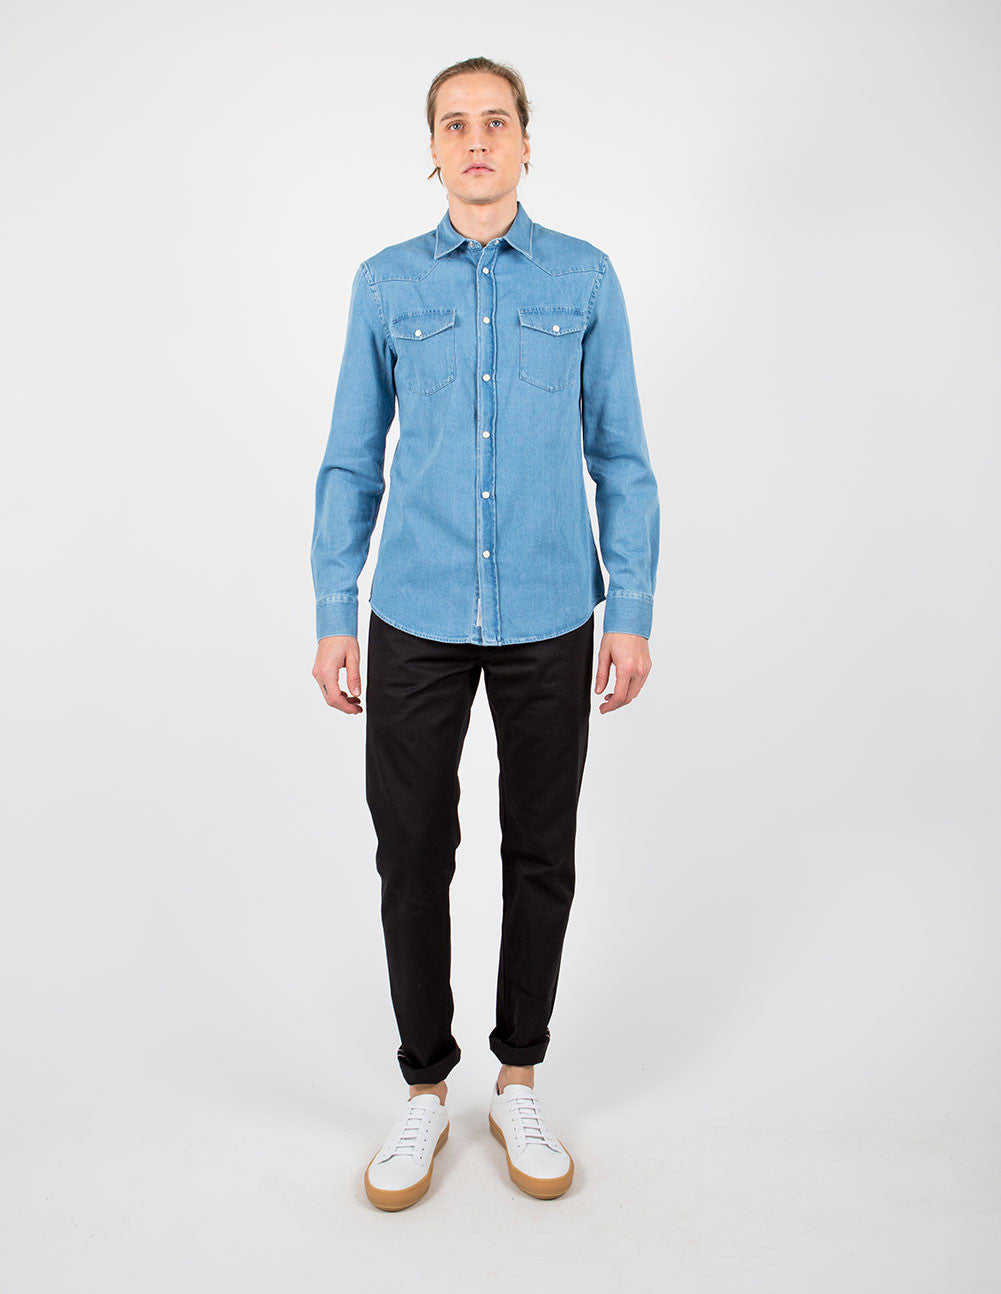 Ewing Denim Shirt